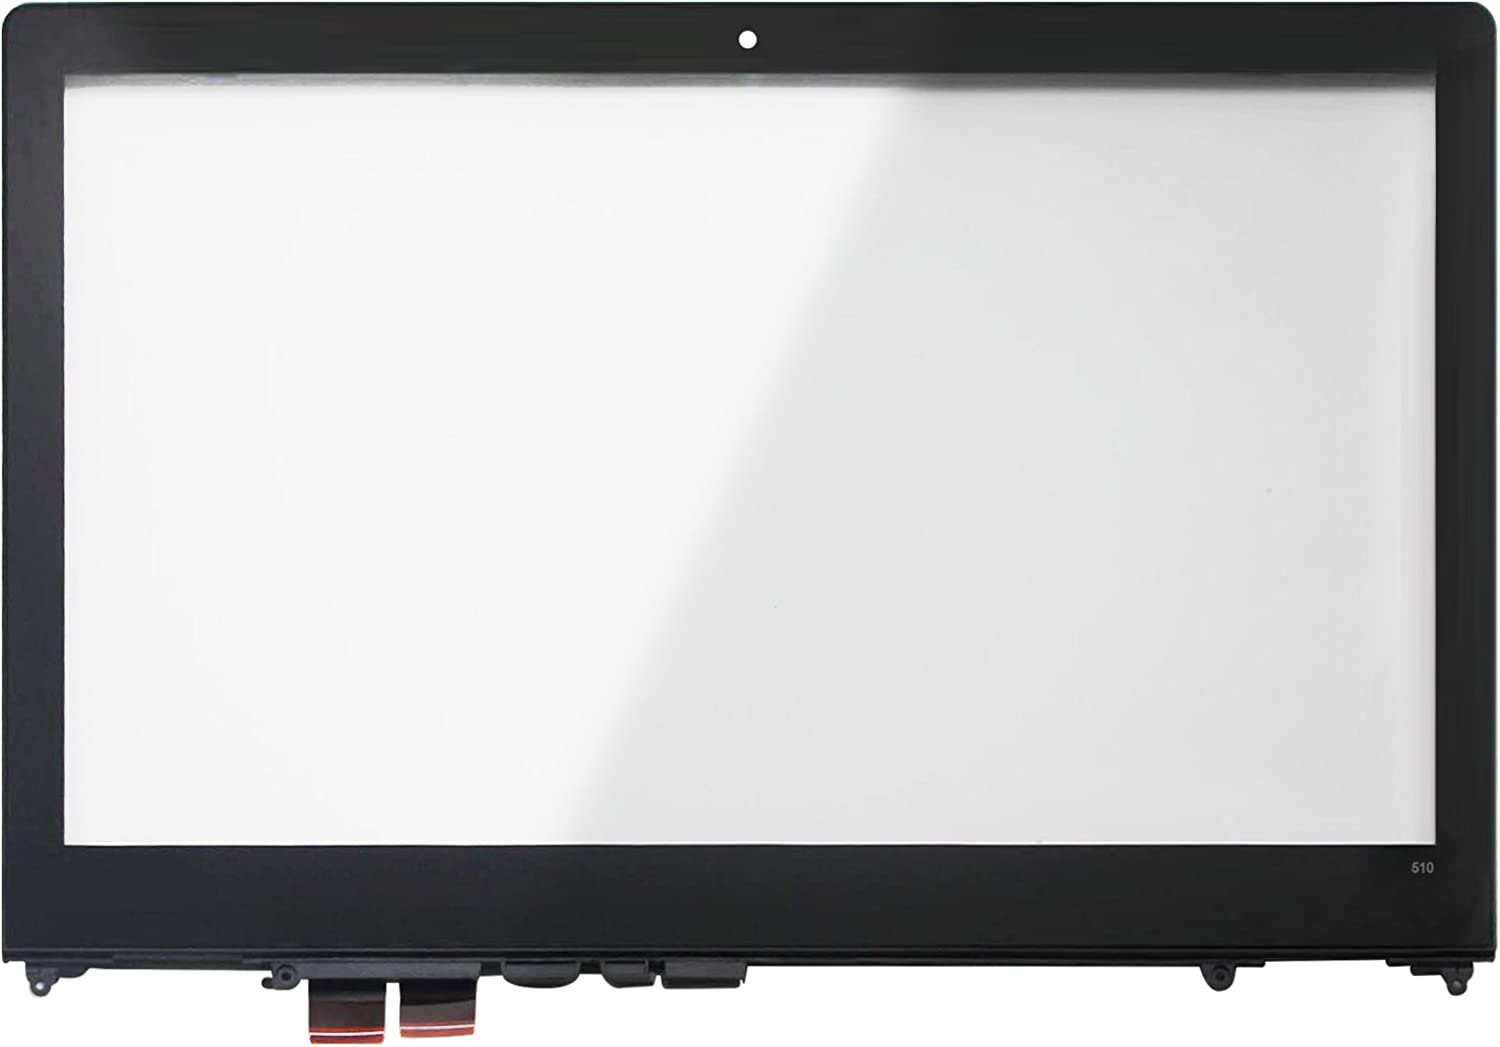 LCDOLED Replacement 15.6 inches Touch Screen Digitizer Glass Panel with Bezel for Lenovo Flex 4-15 4-1570 4-1580 80SB 80VE (Touch Digitizer + Bezel)